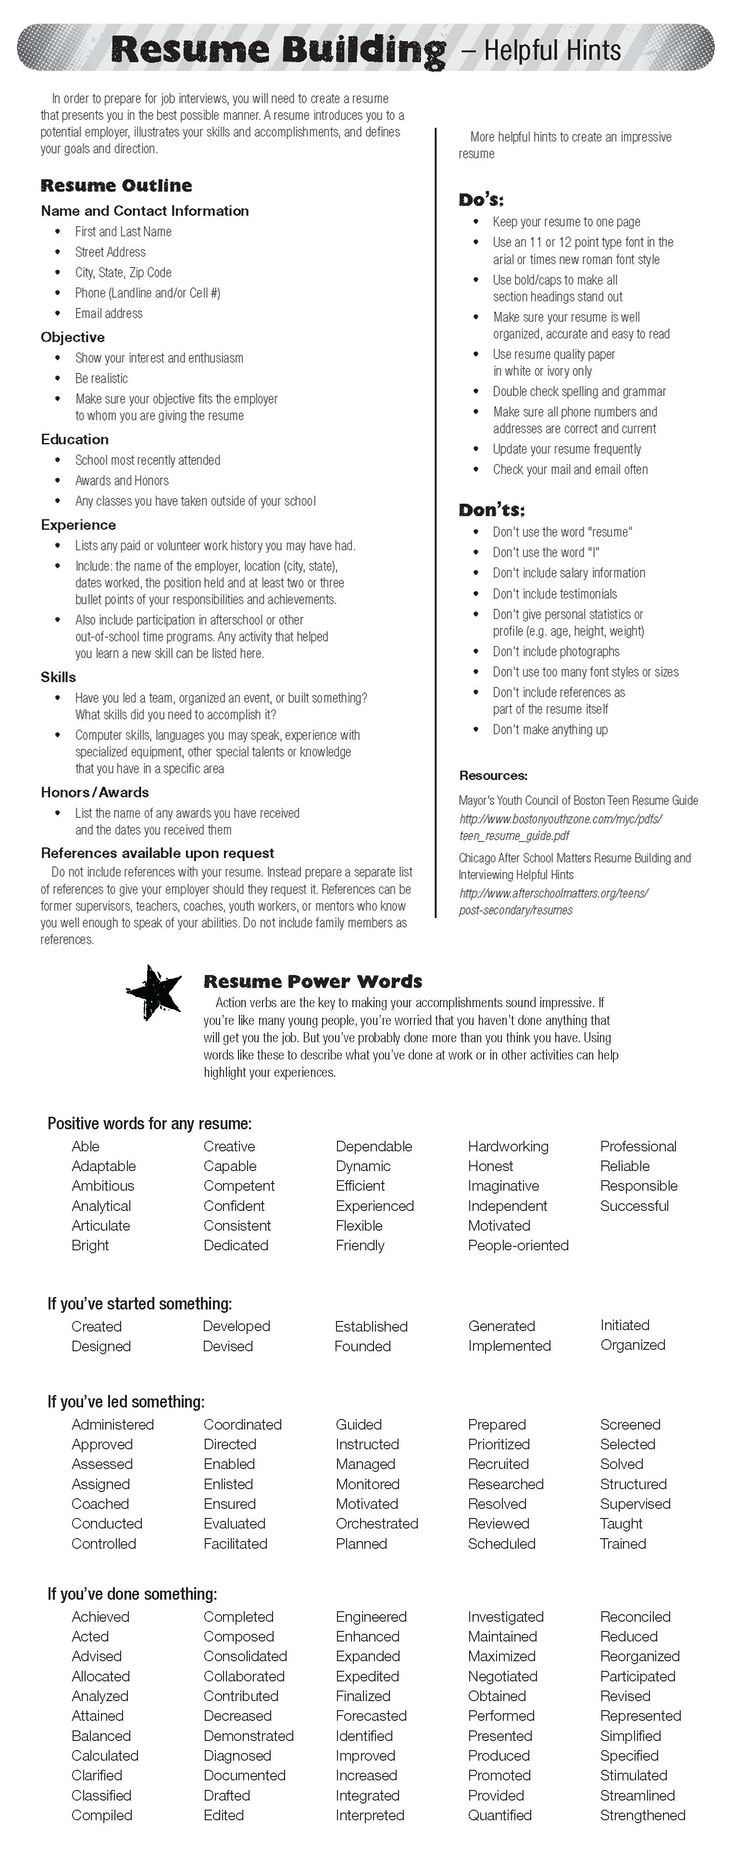 Opposenewapstandardsus  Pleasing  Ideas About Resume On Pinterest  Cv Format Resume Cv And  With Outstanding  Ideas About Resume On Pinterest  Cv Format Resume Cv And Resume Templates With Astounding Pictures Of Resume Also Medical Surgical Nursing Resume In Addition Ideas For Resume And Resume Templates College Student As Well As The Perfect Resume Template Additionally Sample Resume Nursing From Pinterestcom With Opposenewapstandardsus  Outstanding  Ideas About Resume On Pinterest  Cv Format Resume Cv And  With Astounding  Ideas About Resume On Pinterest  Cv Format Resume Cv And Resume Templates And Pleasing Pictures Of Resume Also Medical Surgical Nursing Resume In Addition Ideas For Resume From Pinterestcom